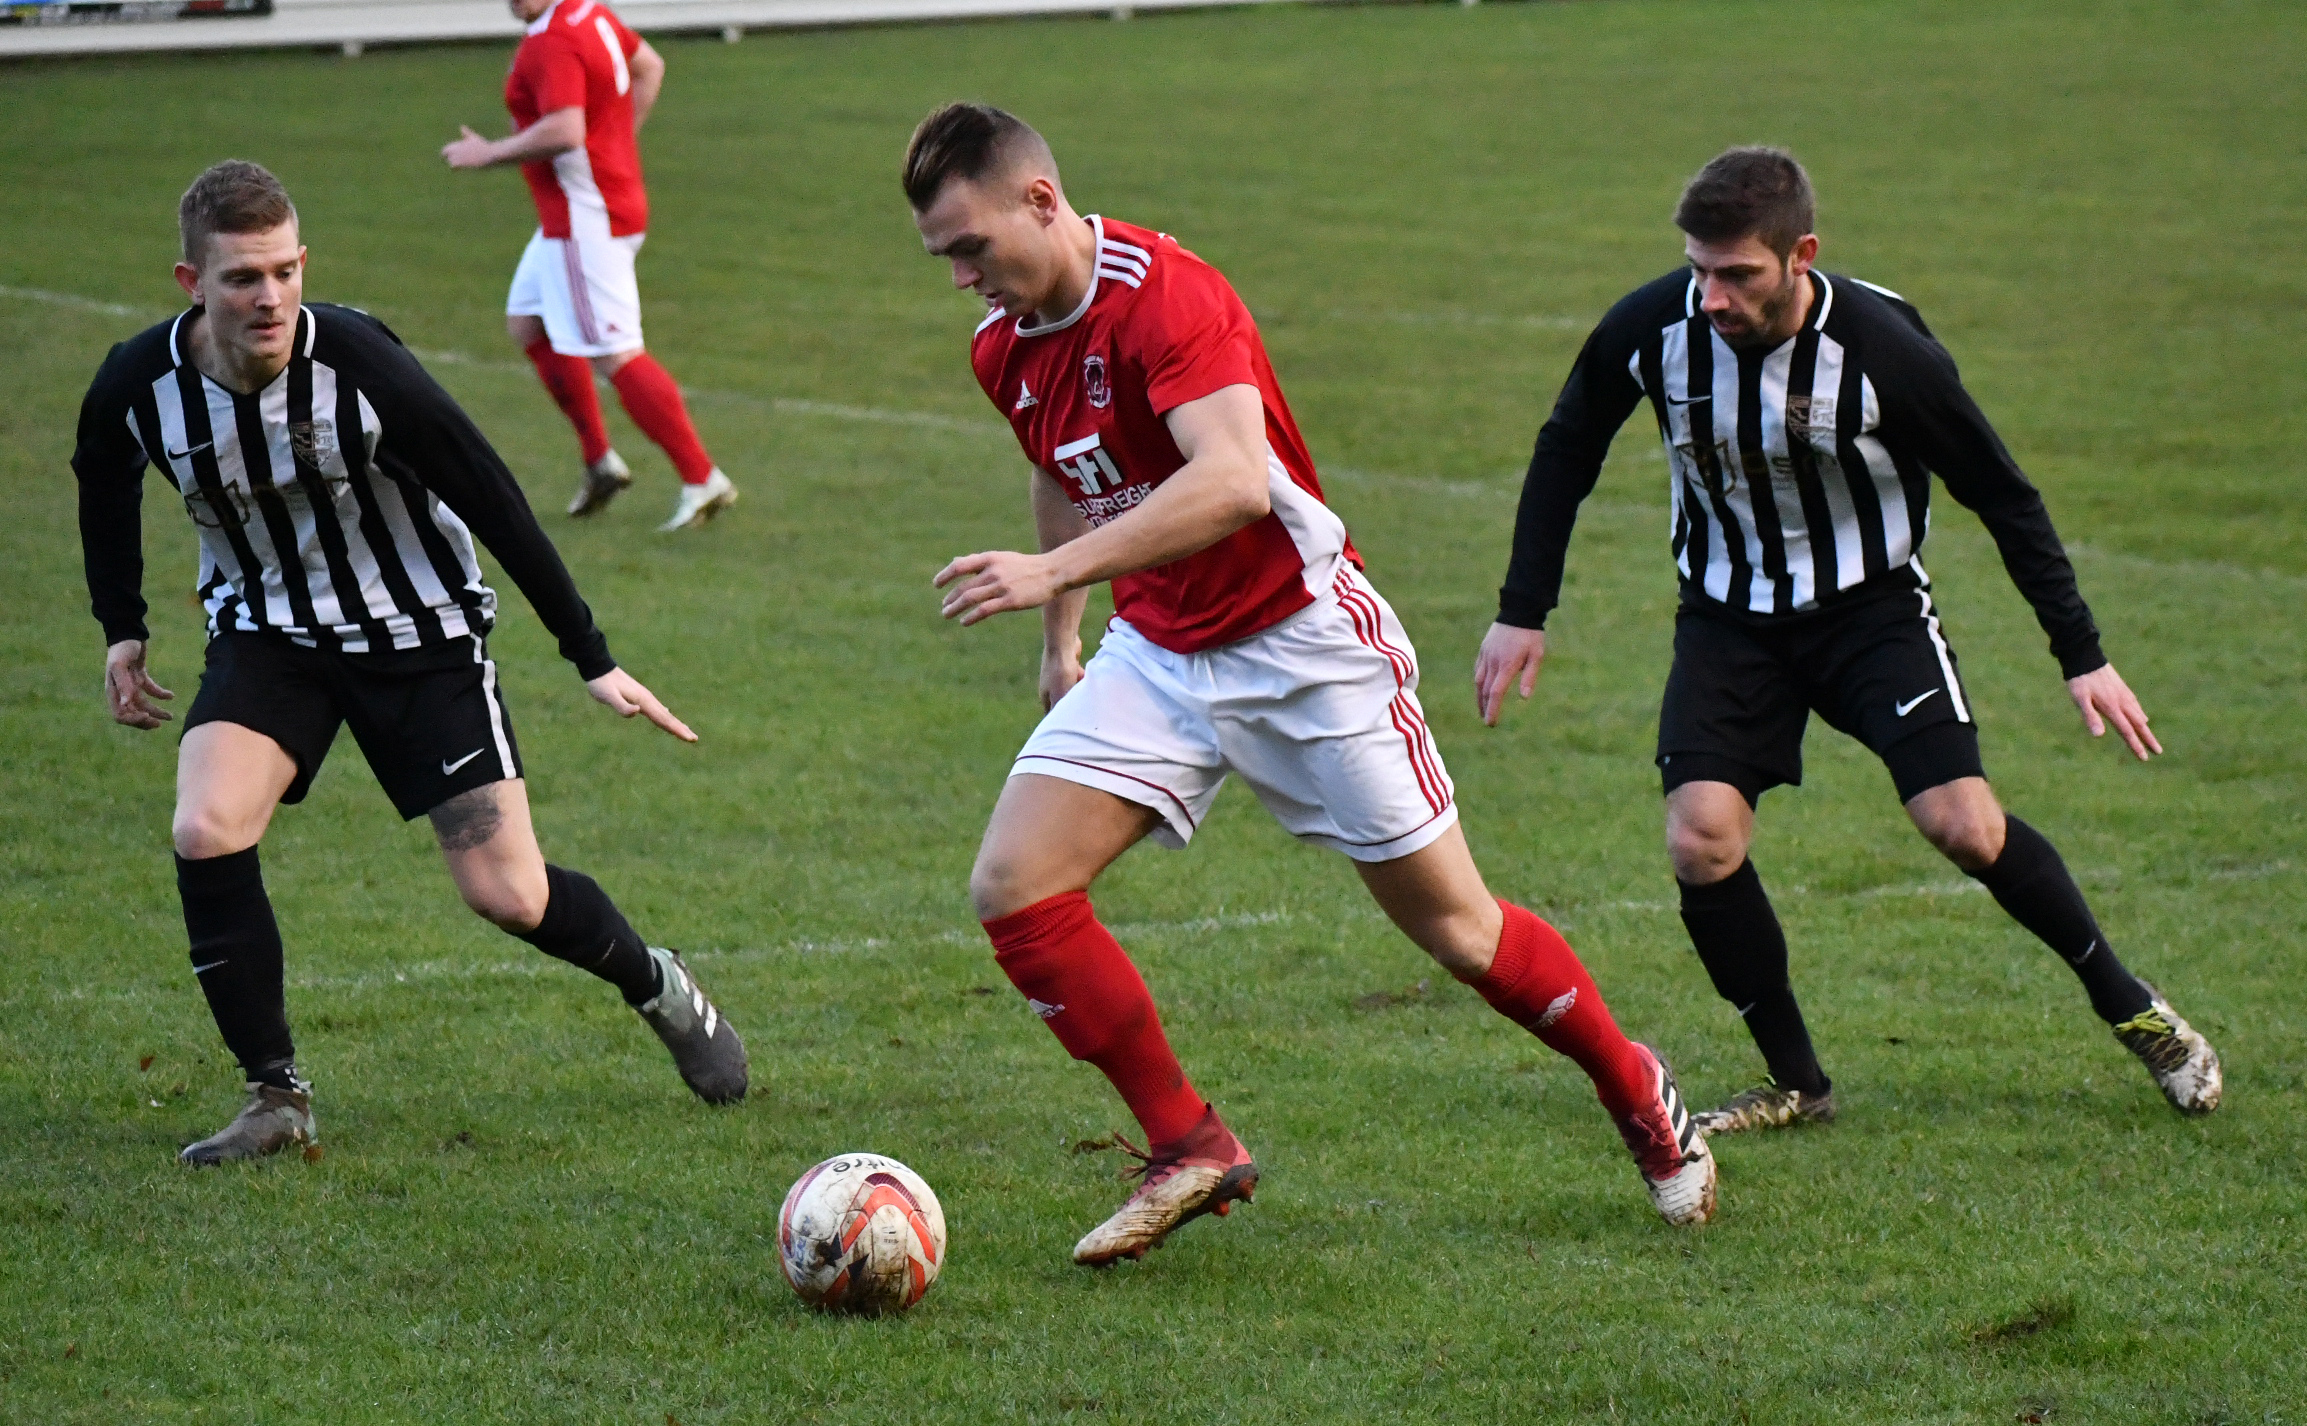 Luke Robinson's goals have helped keep Thackley's head above water this season